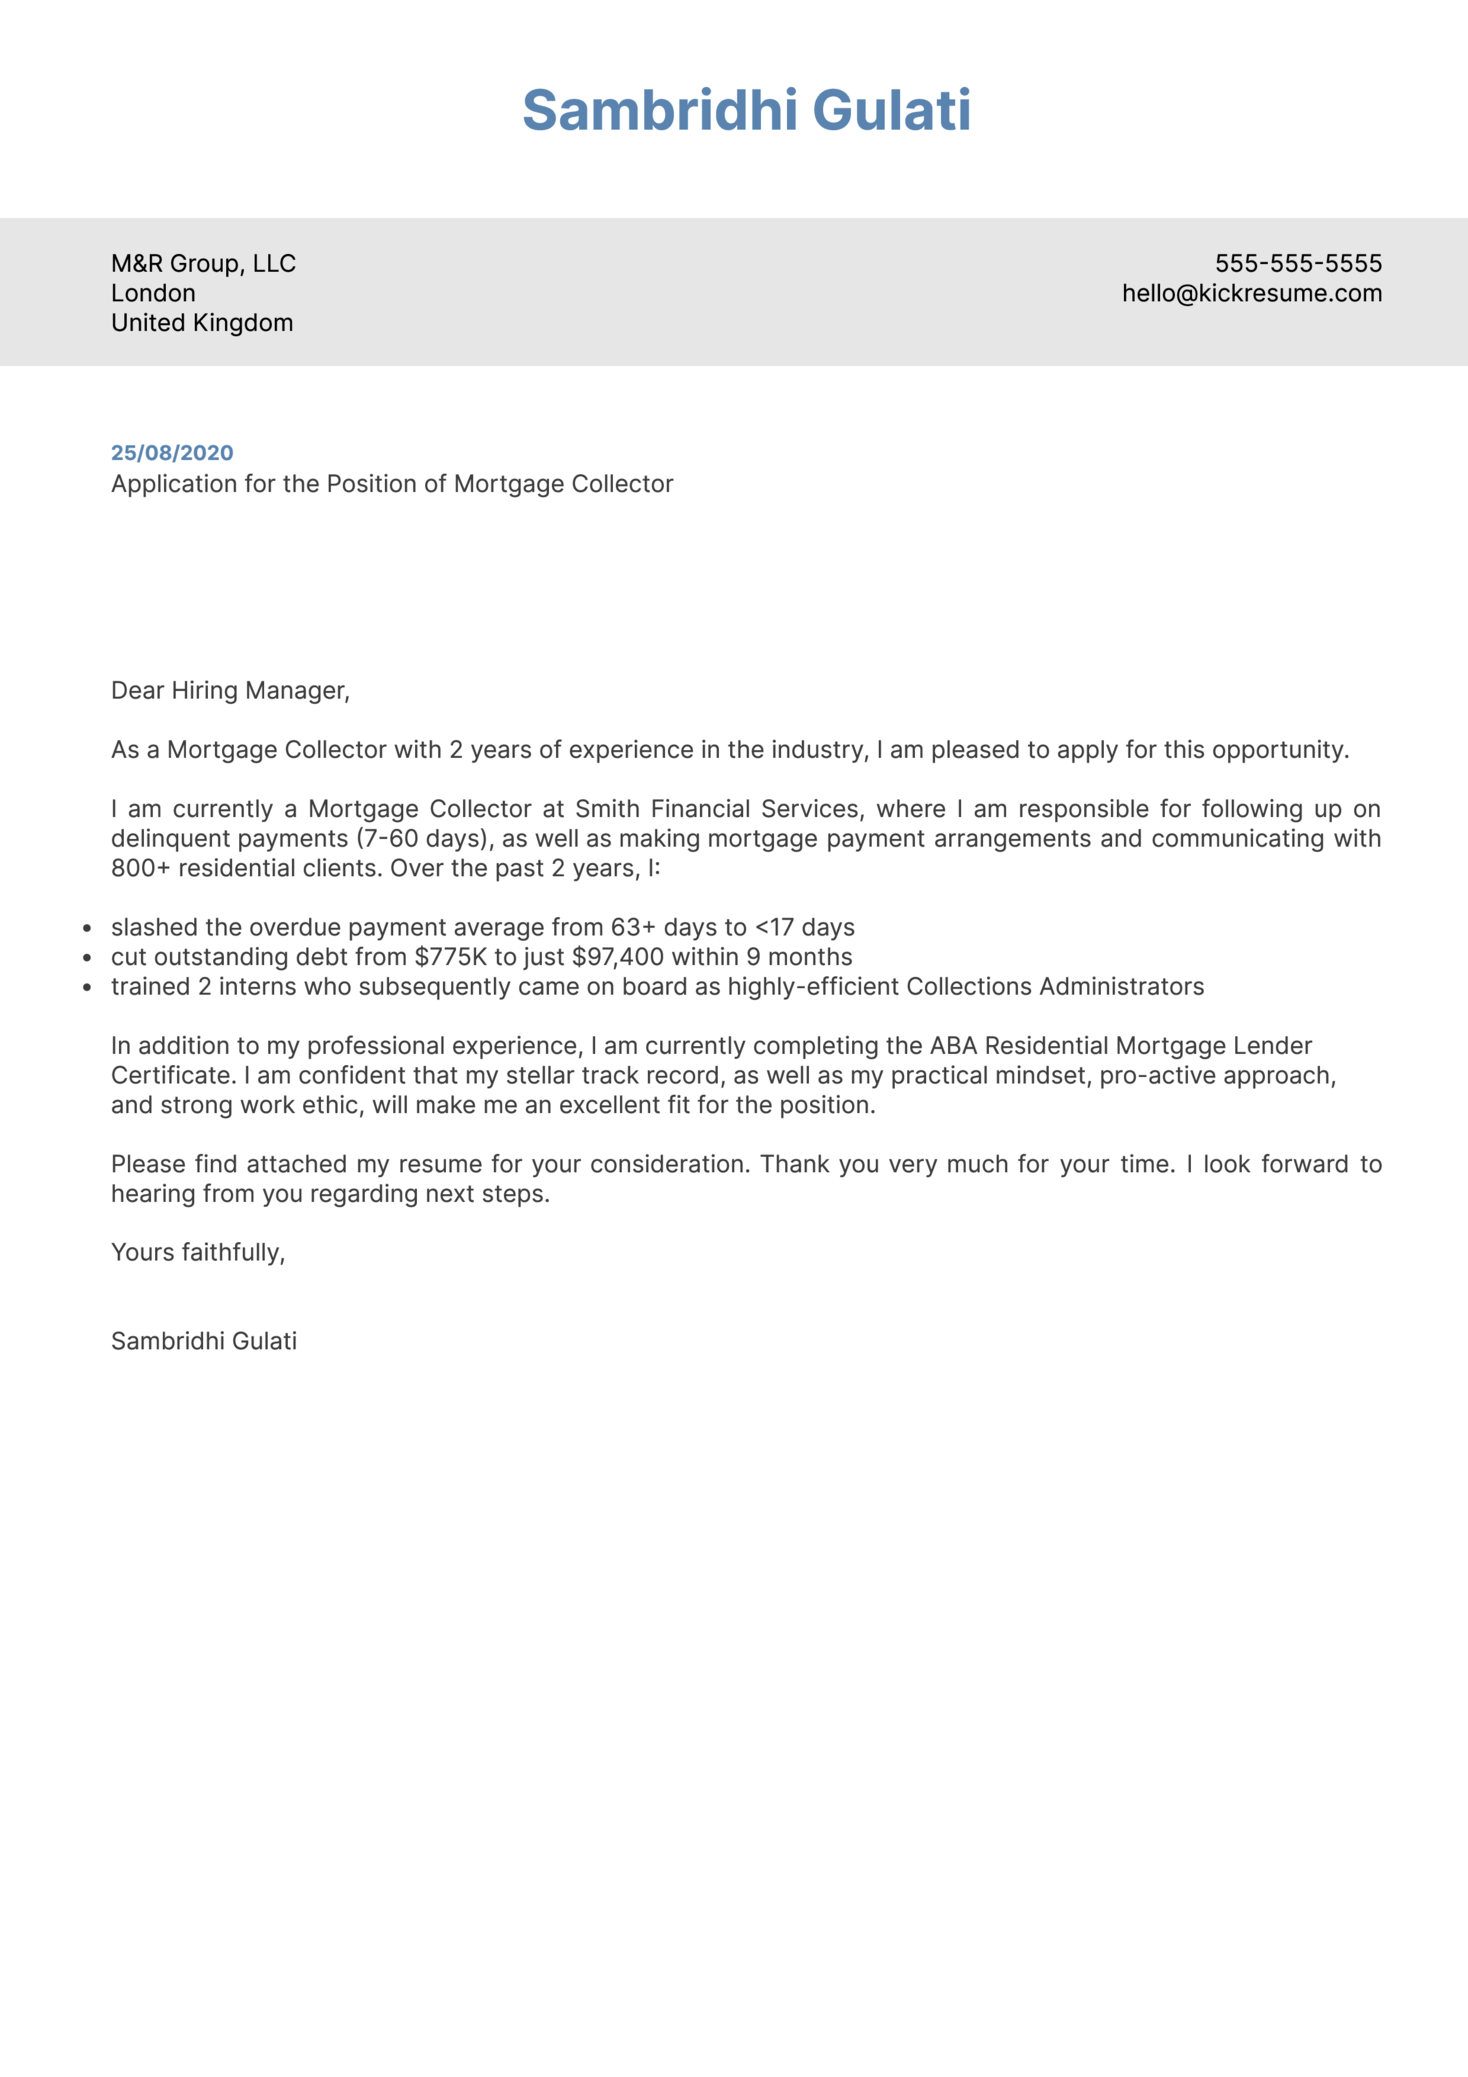 Mortgage Collector Cover Letter Example